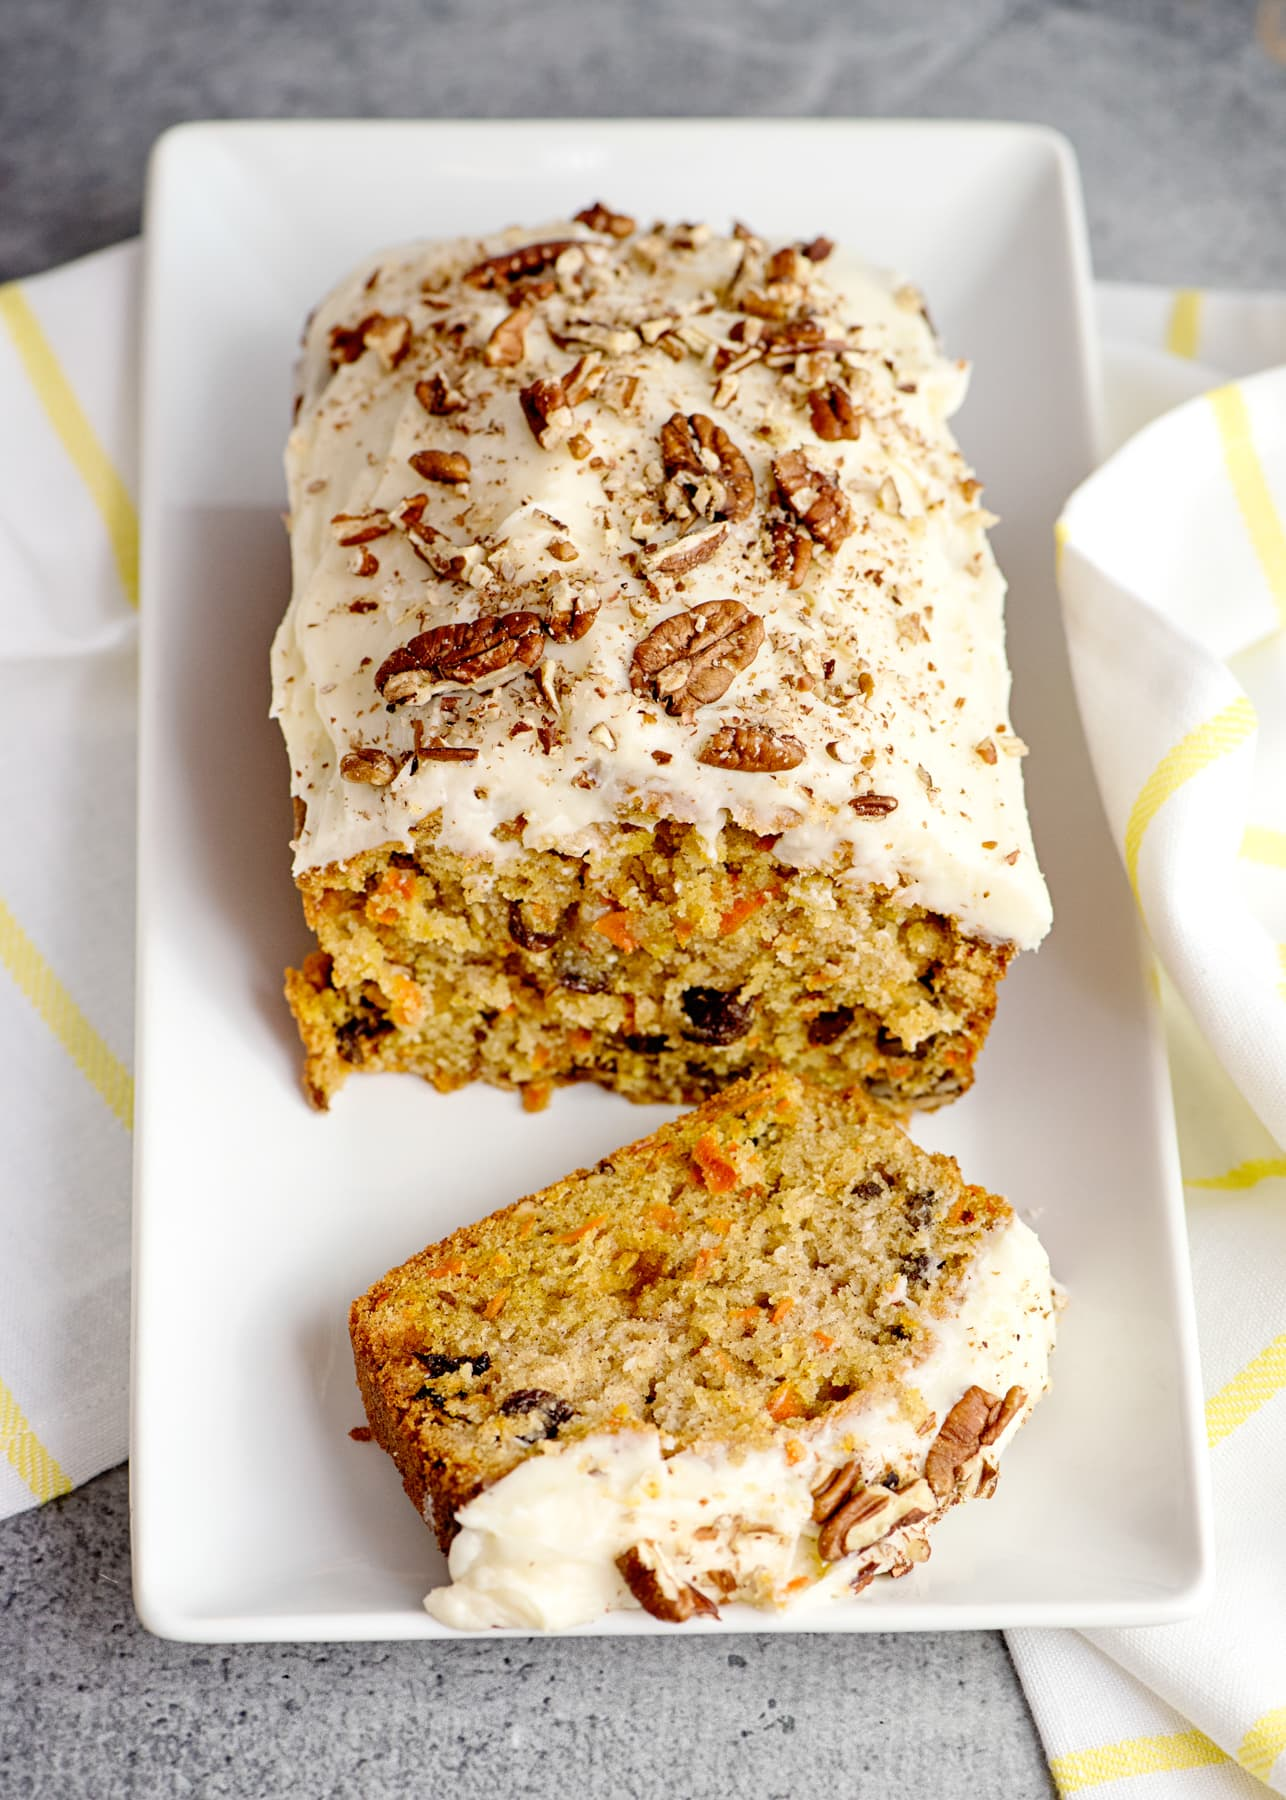 Carrot cake loaf with a cut slice, sitting on a plate iced with frosting